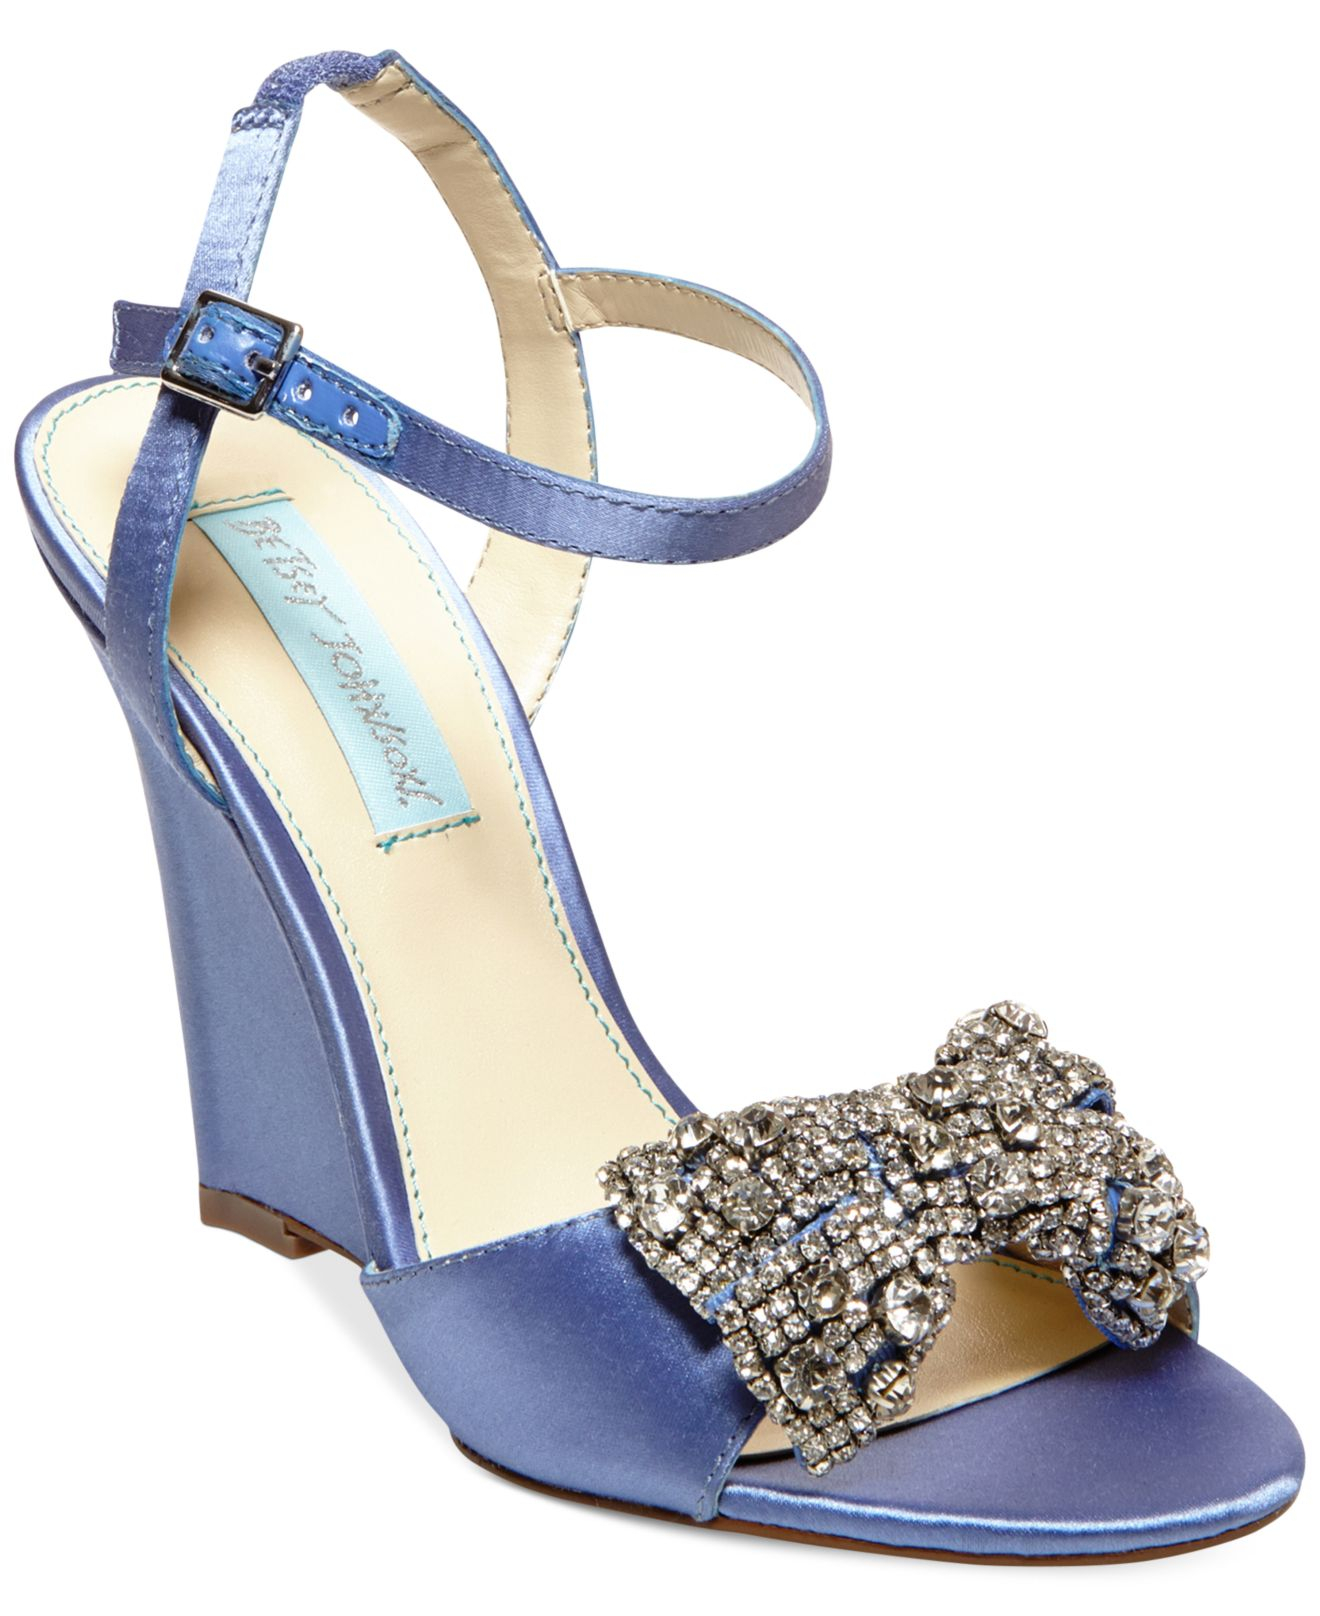 betsey johnson blue by dress wedge evening sandals in blue